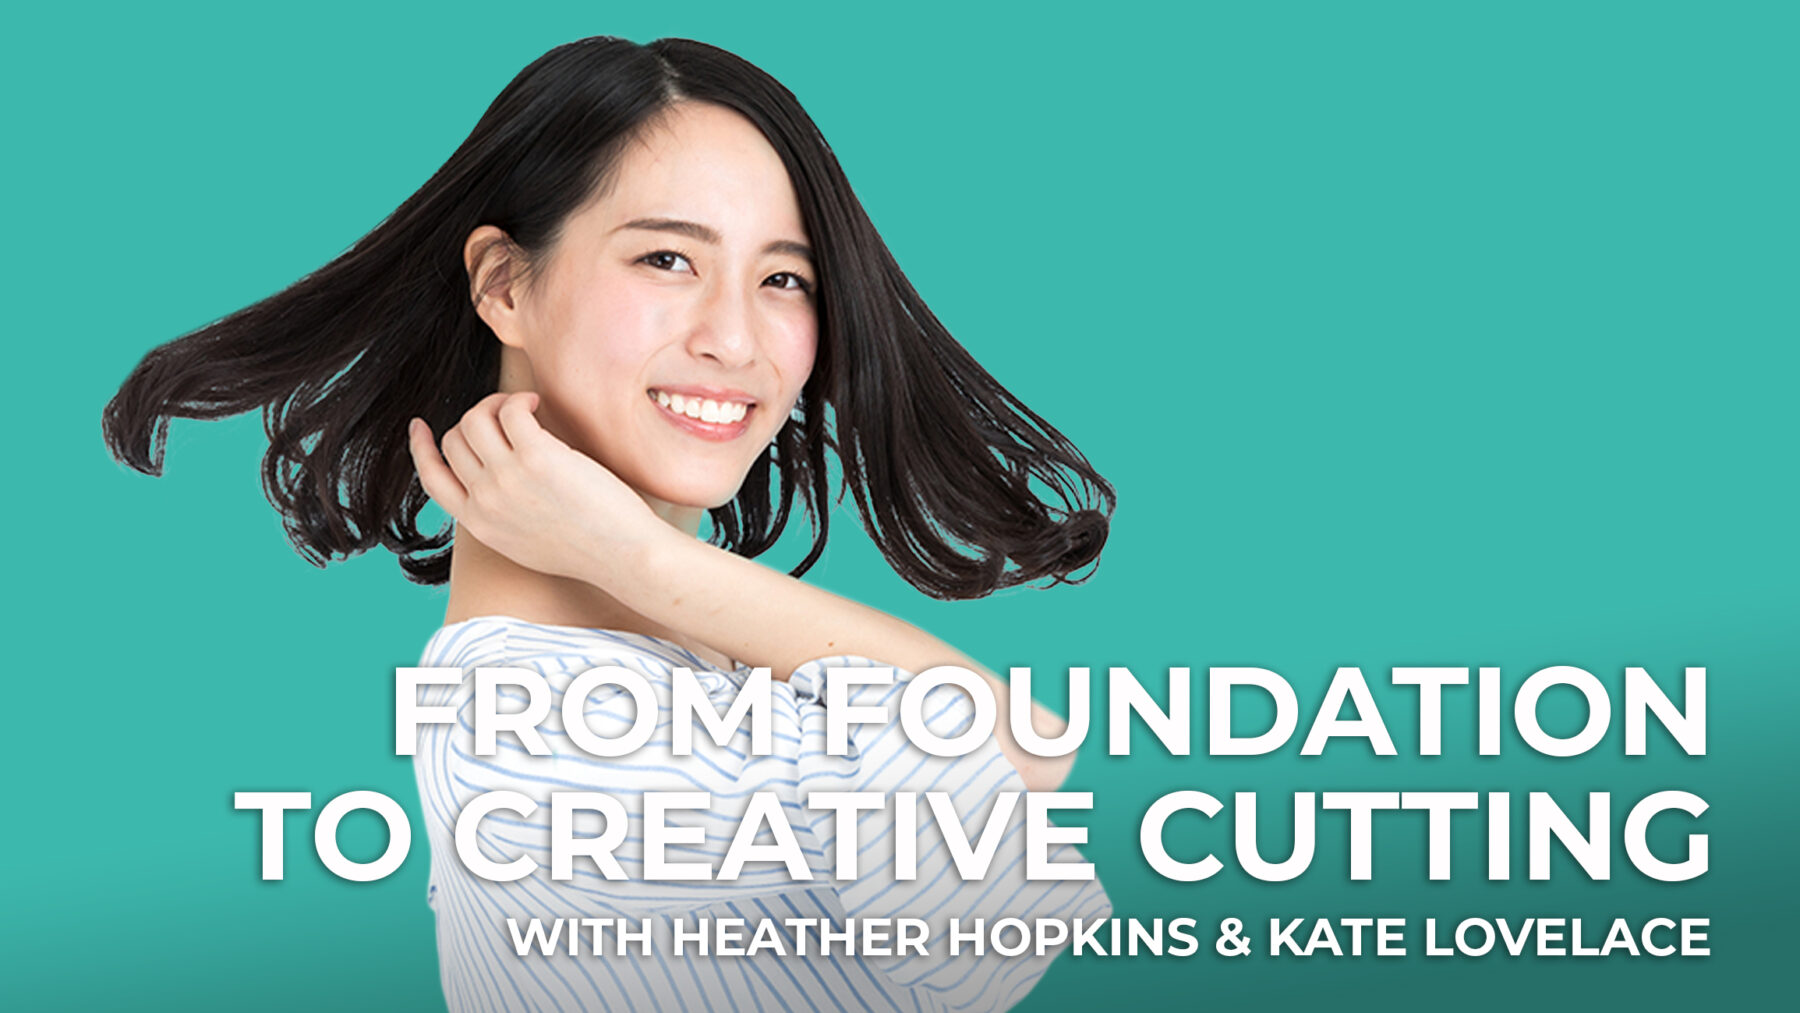 From Foundation to Creative Cutting - Session 2